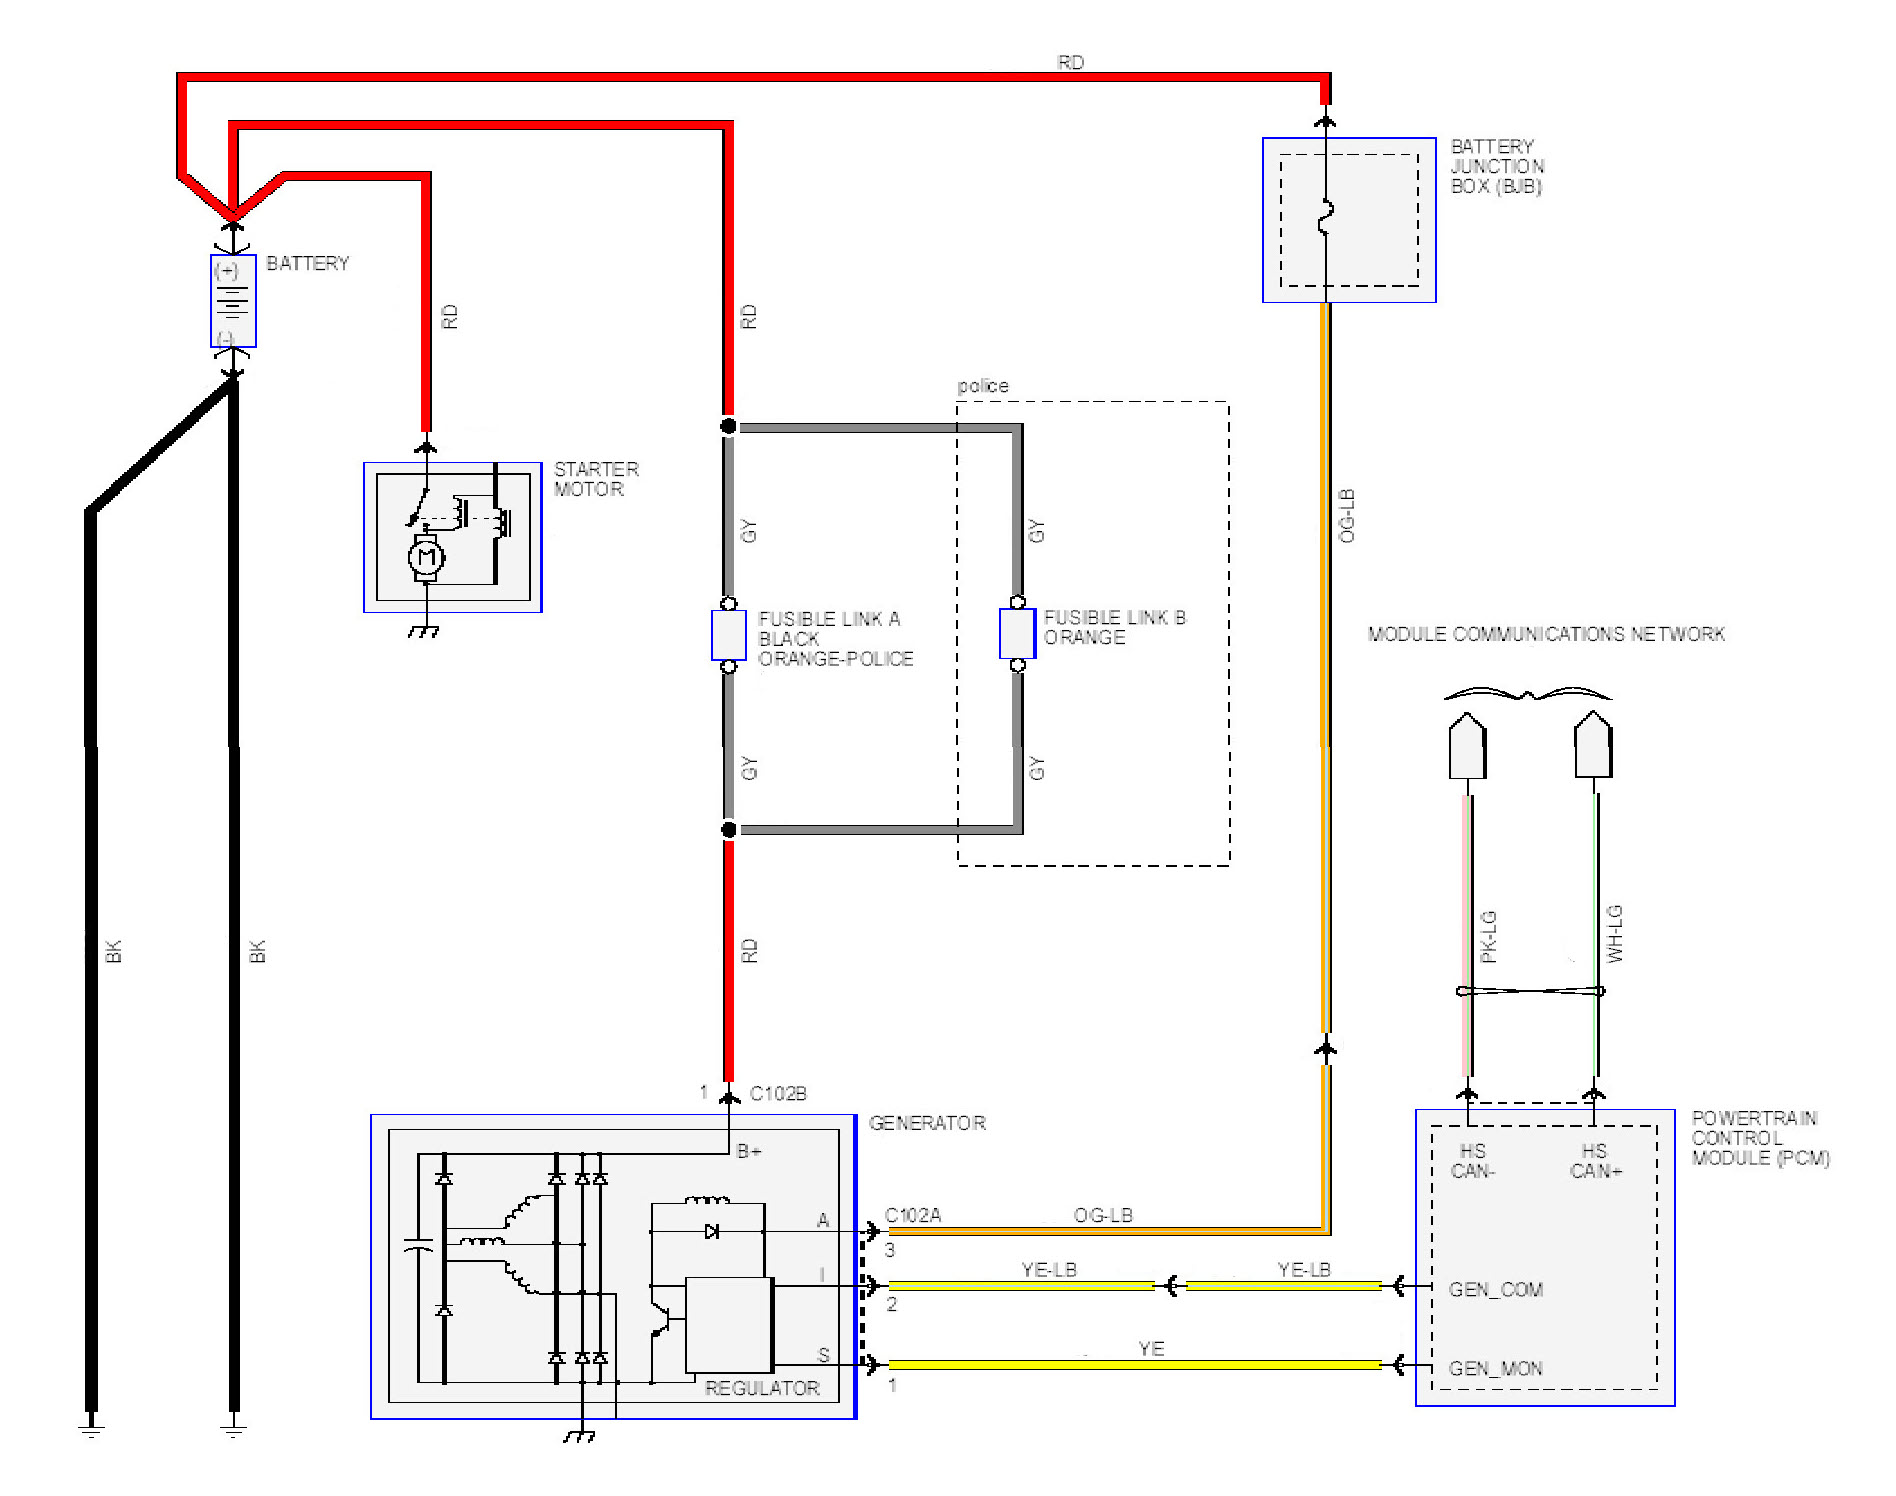 10crownviccharge ford crown victoria alternator wiring diagrams p71 wiring diagram at reclaimingppi.co